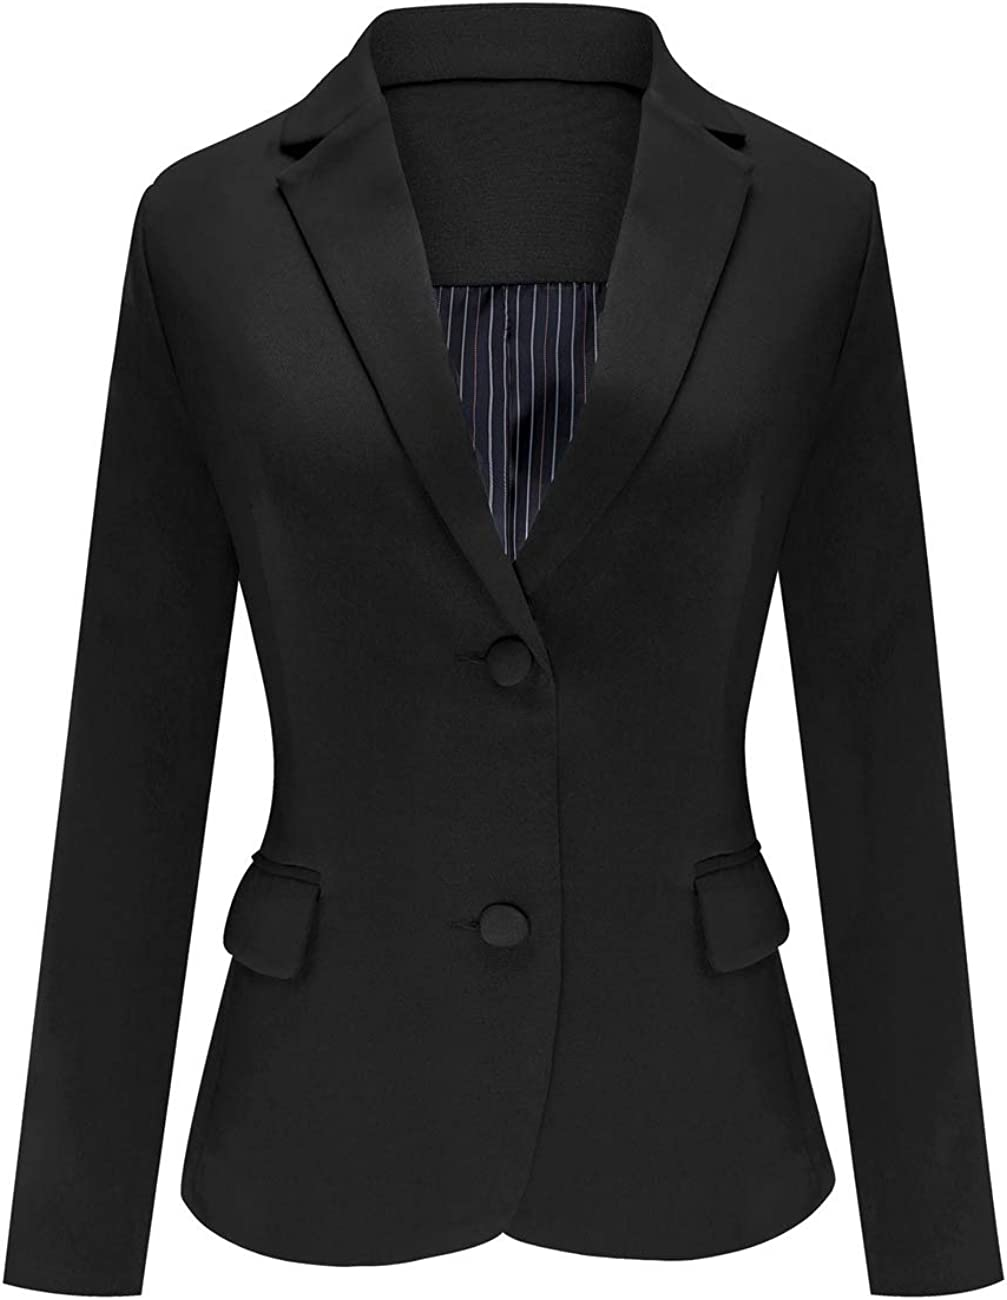 Luyeess Women's Casual Work Office Notch Lapel Pocket Buttons Blazer Suit Jacket